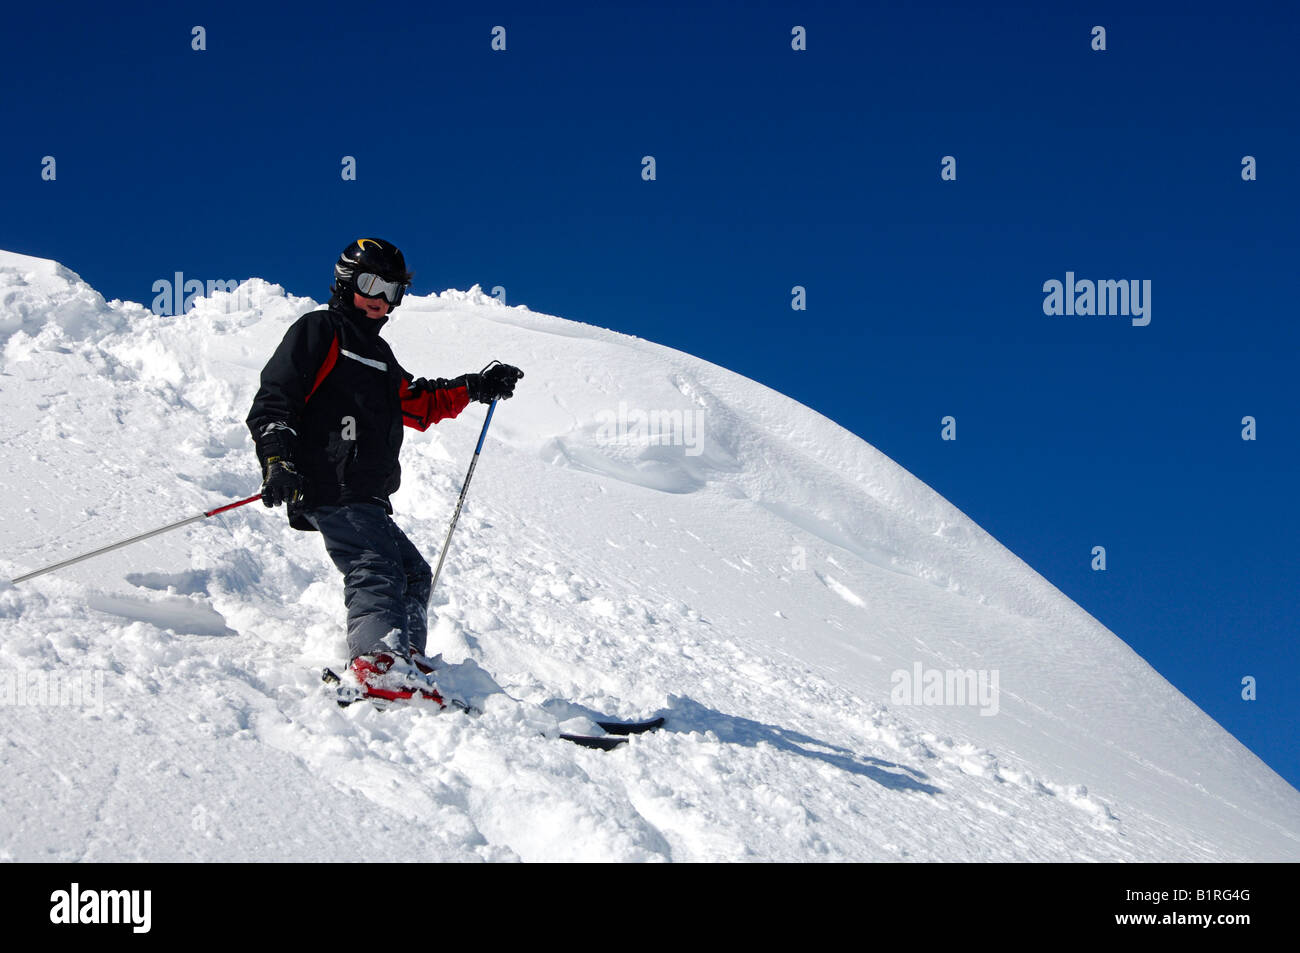 12-year-old boy skiing off-piste, Savoyen area, France, Europe - Stock Image